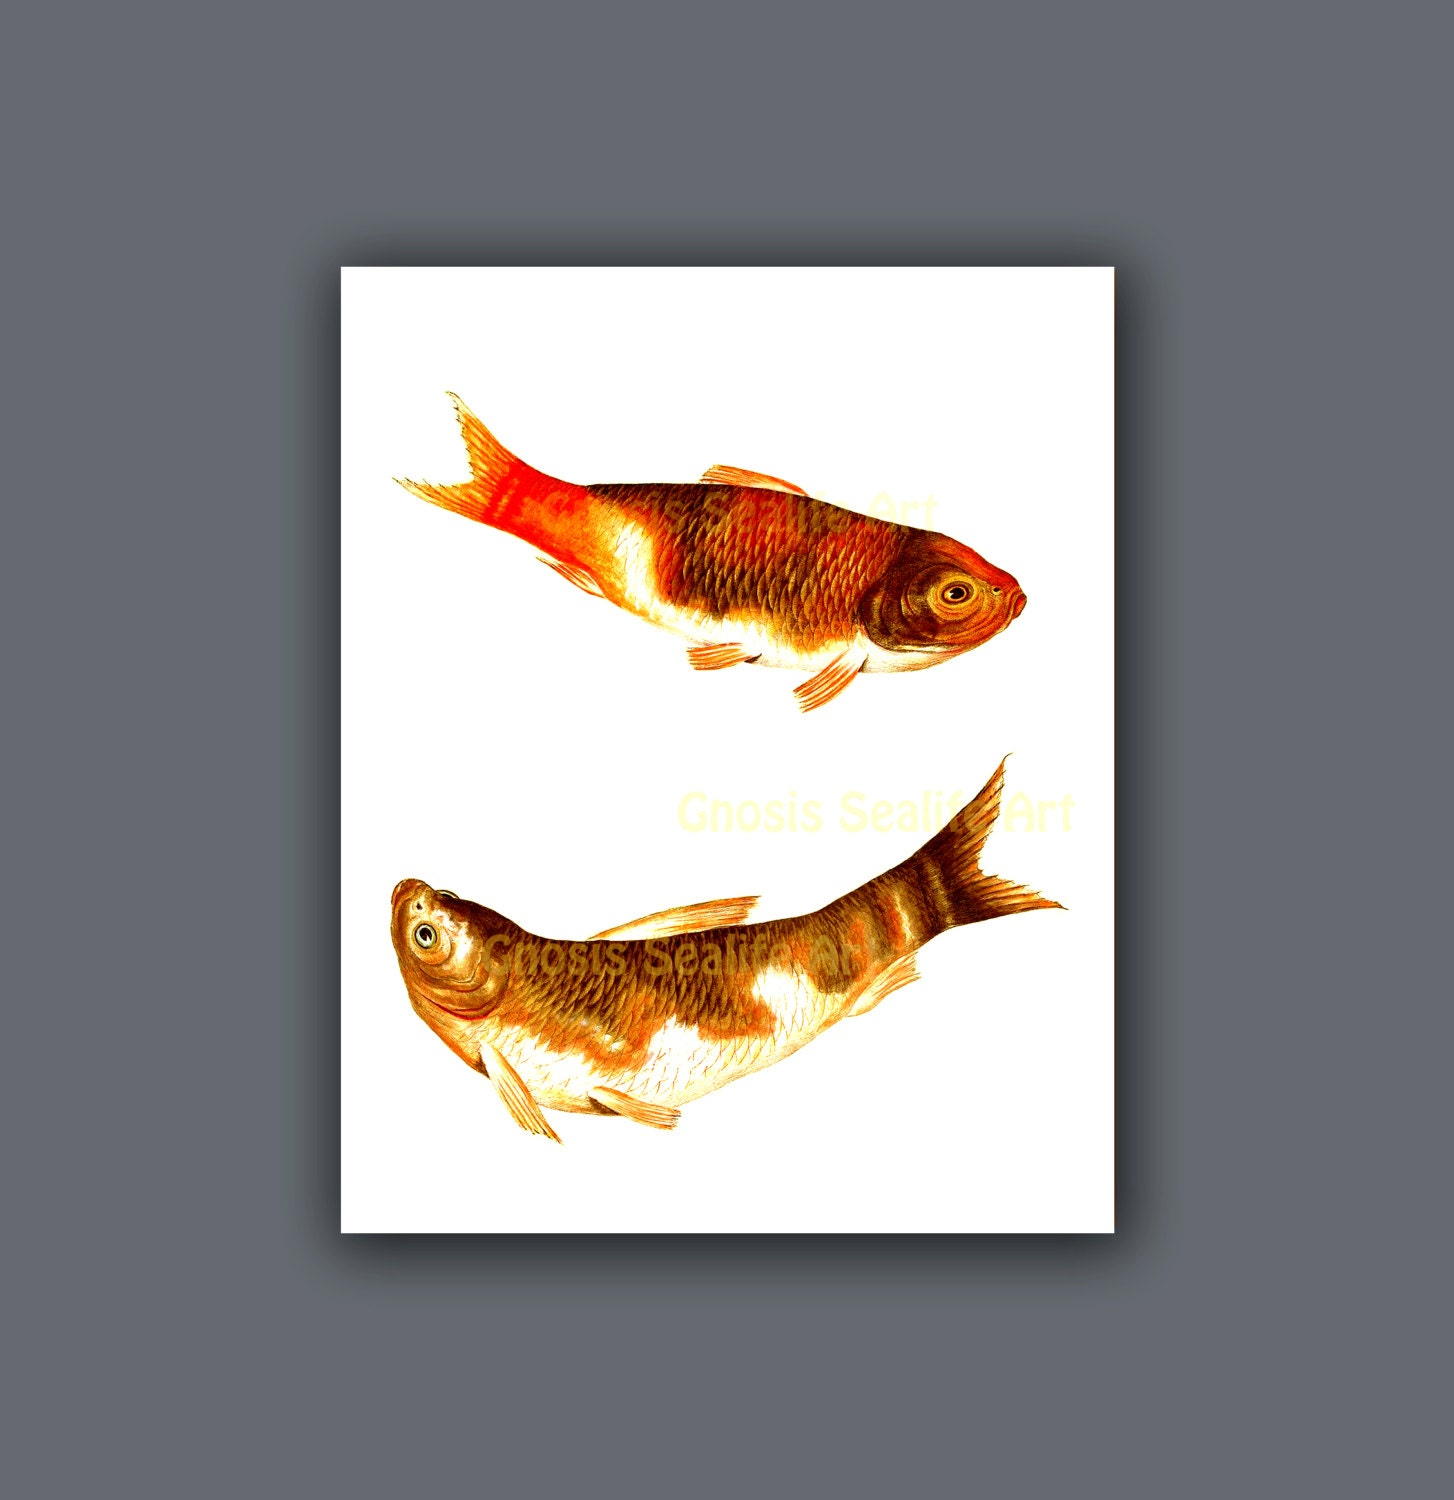 Vintage fish art koi fish wall art print 6 symbol for love for Koi carp wall art